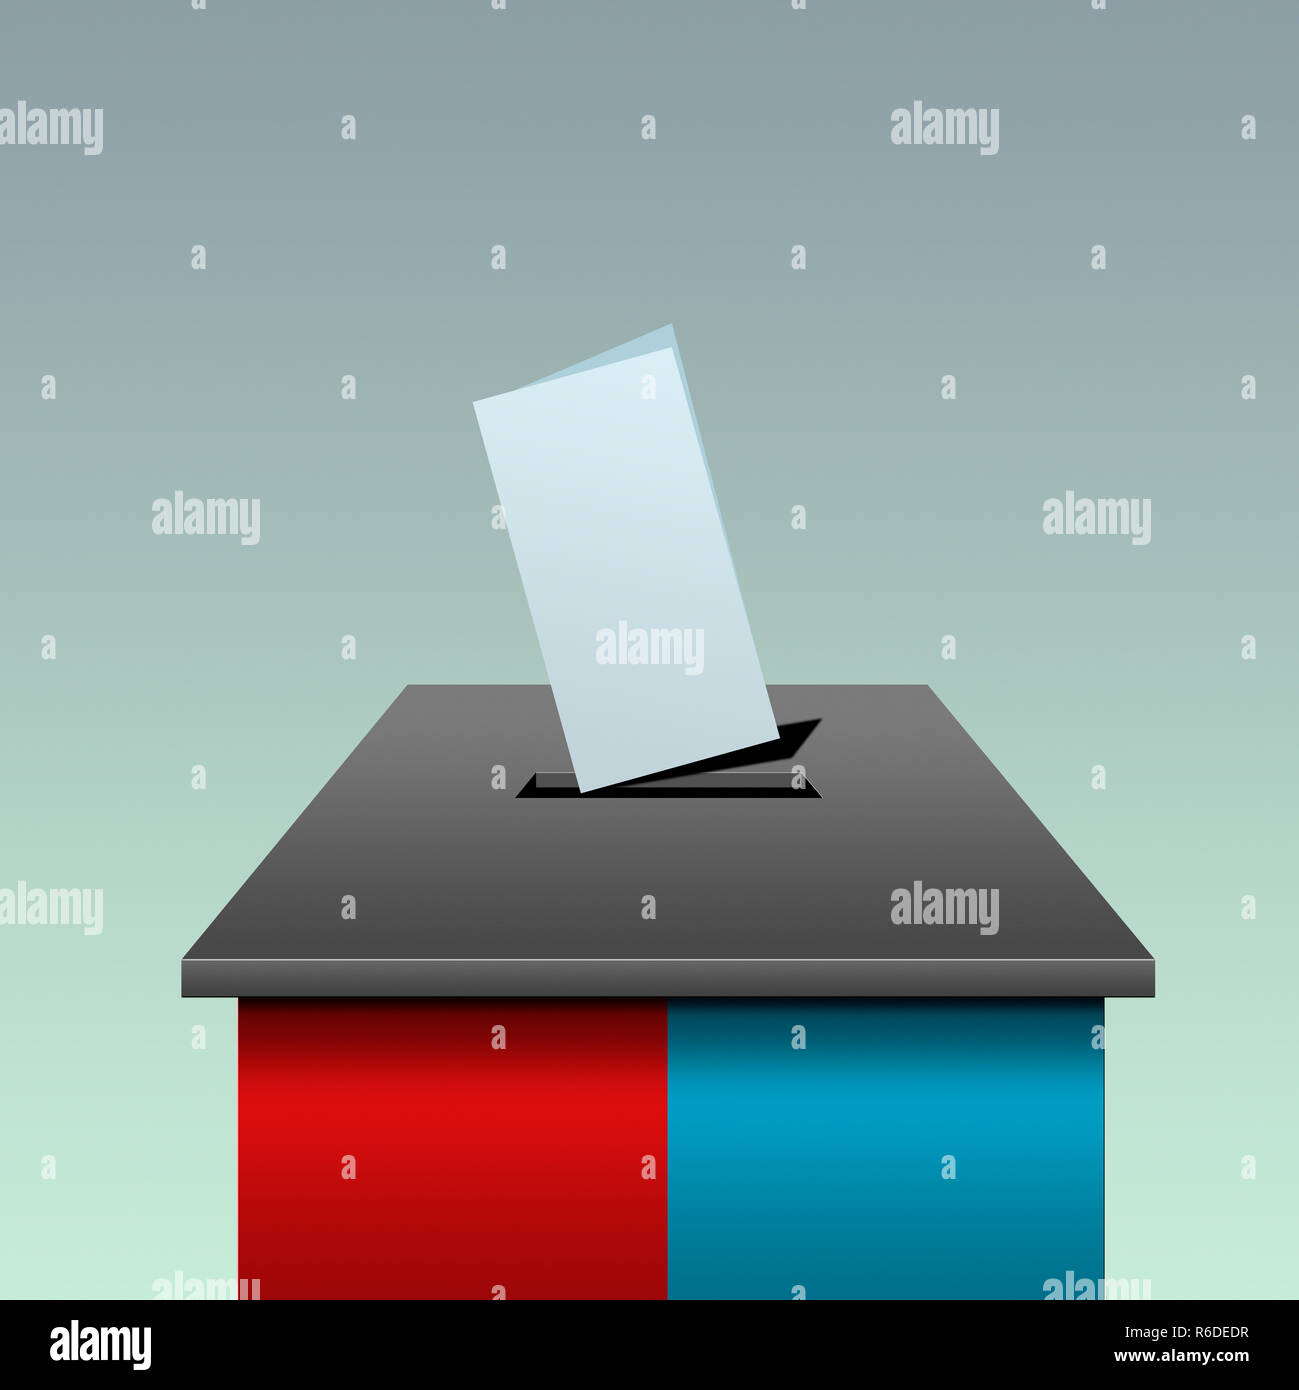 Digital image of ballot box colored red and blue, voting slip in slot - Stock Image